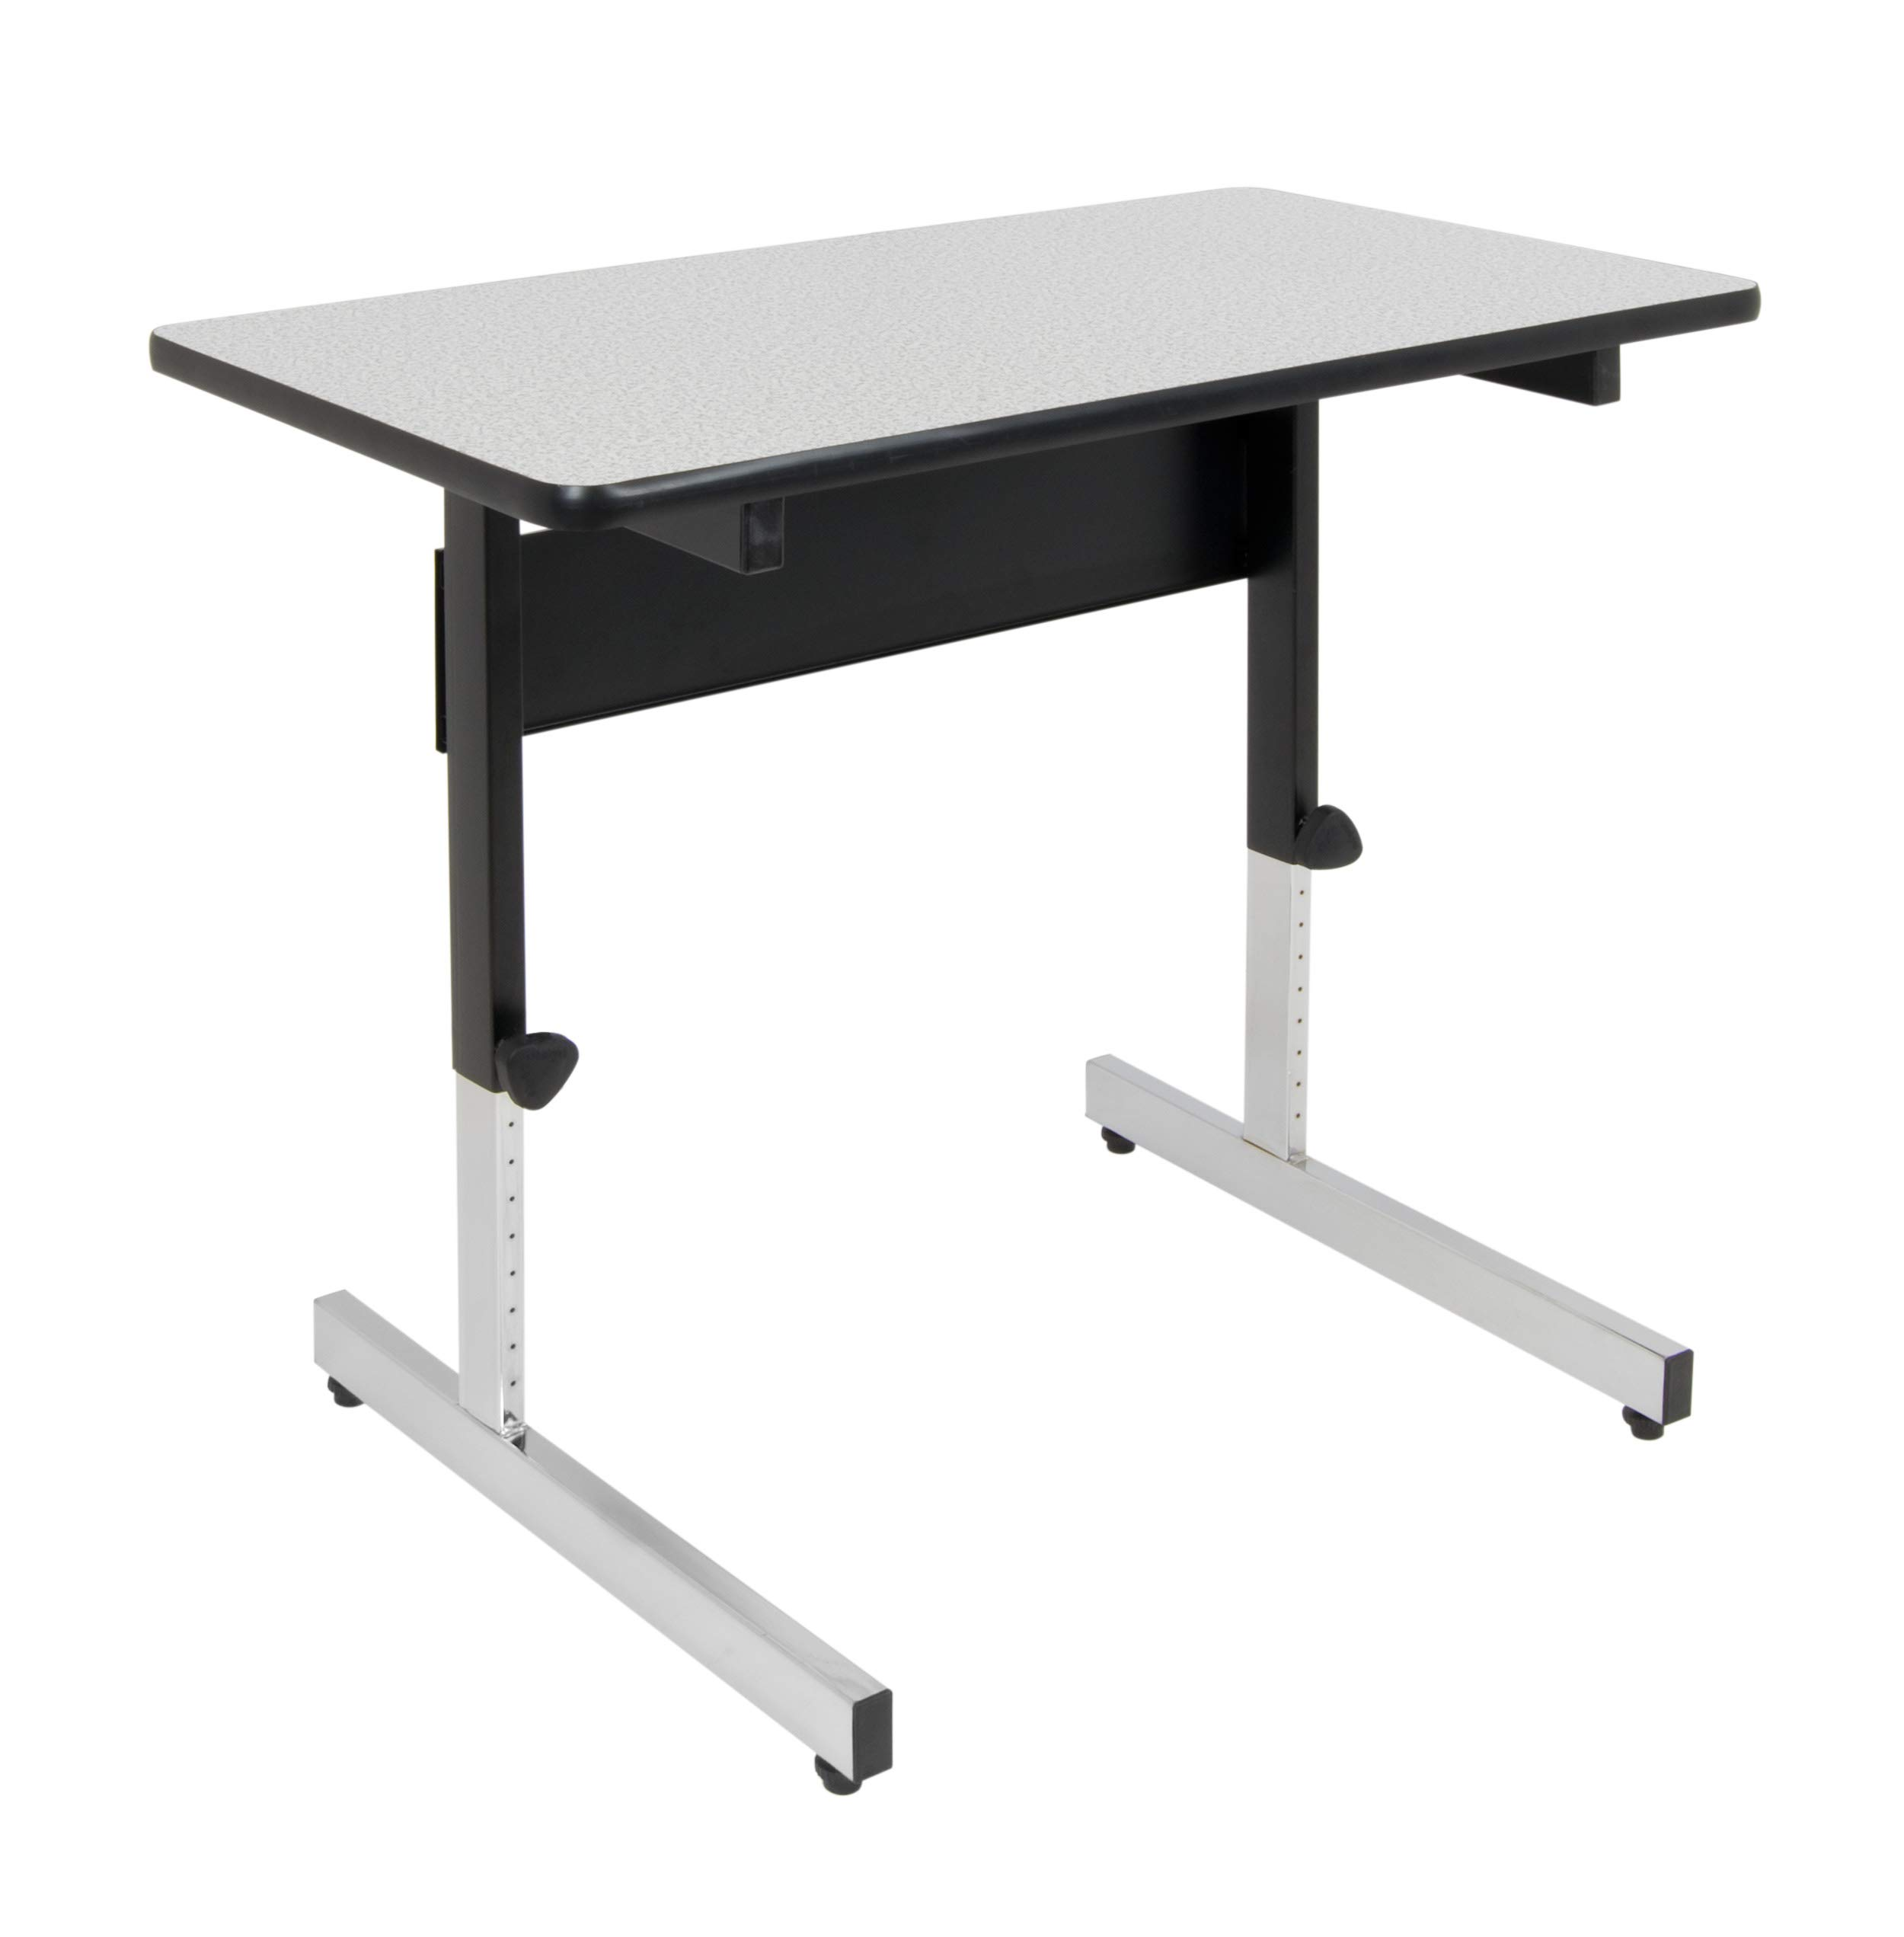 Calico Designs Adapta Height Adjustable Office Desk, All-Purpose Utility Table, Sit to Stand up Desk Home Computer Desk, 23'' - 32'' in Powder Coated Black Frame and 1'' Thick Grey Top, 36 Inch by Calico Designs